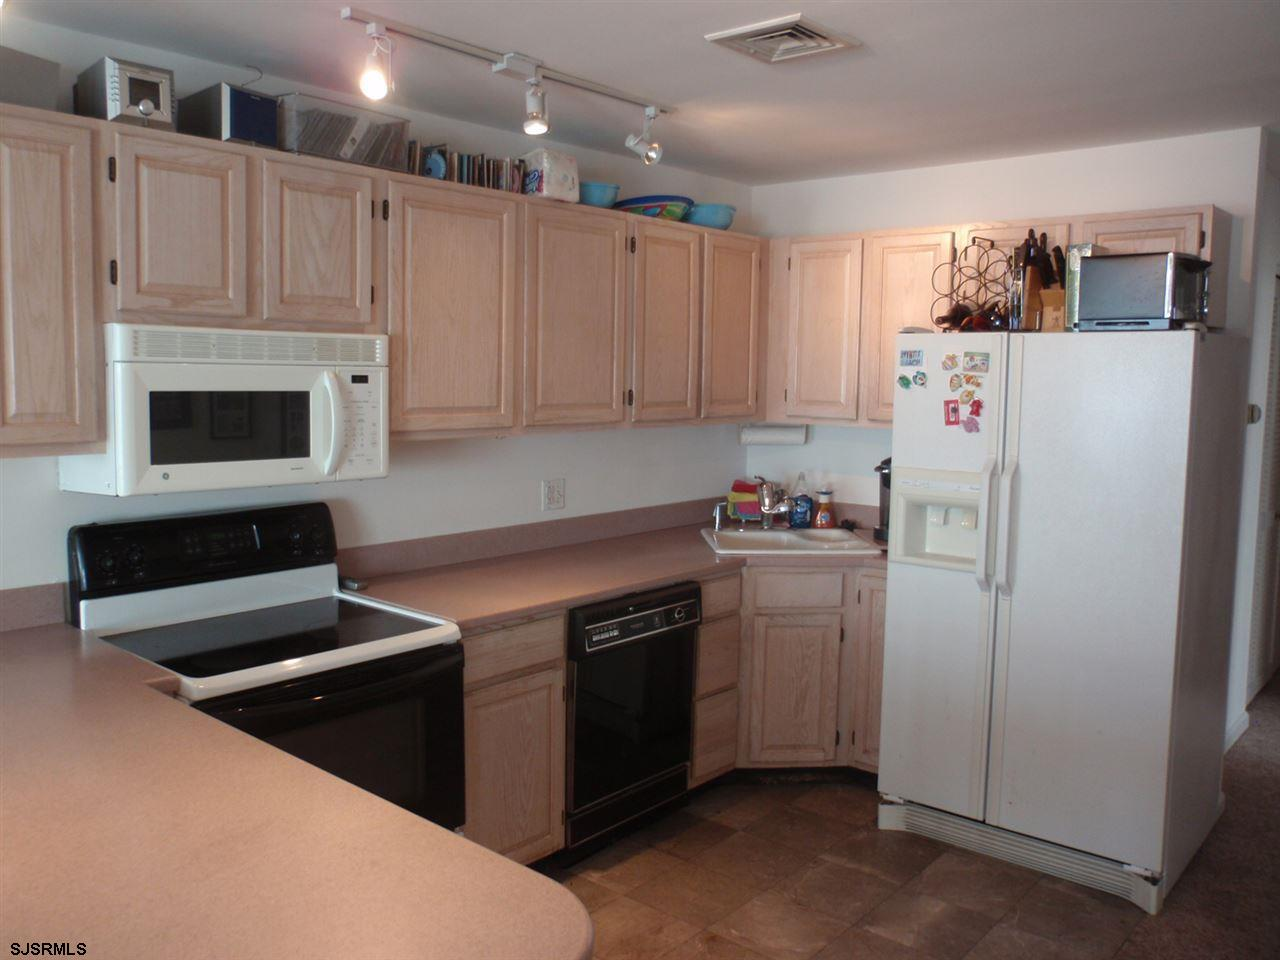 111 S Buffalo #303, Ventnor City, NJ 08406